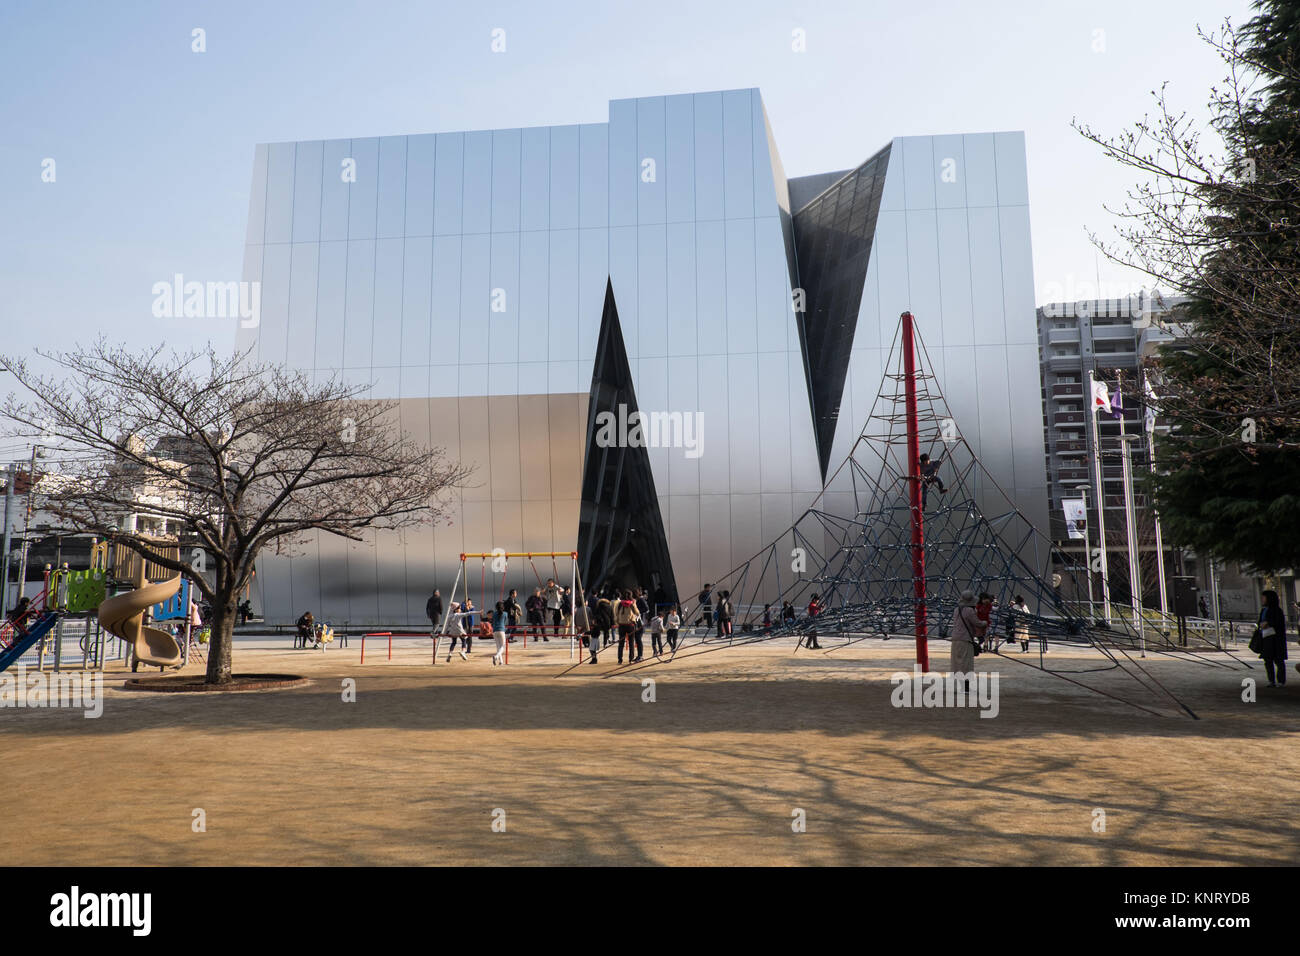 Japan, Tokyo: Sumida Hokusai Museum, in the neighborhood of Sumida, Tokyo, capital city of Japan. The museum is - Stock Image